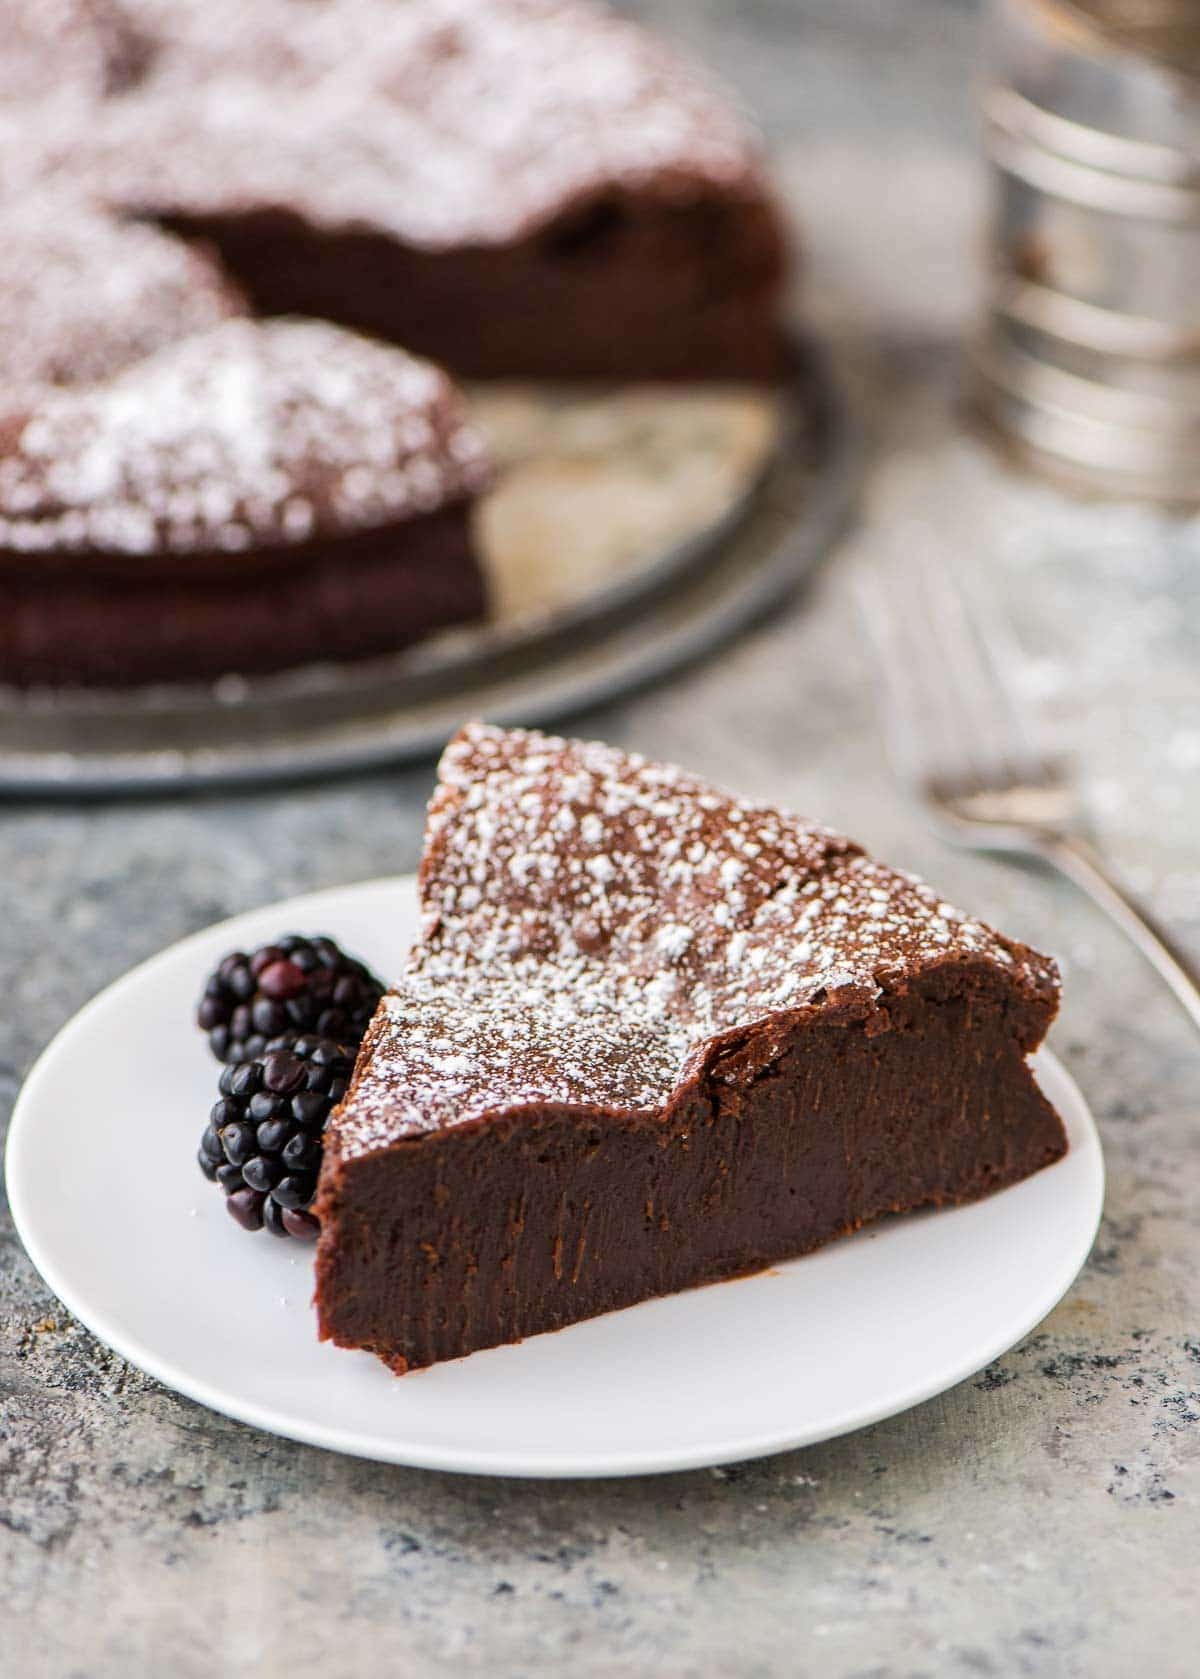 Easy Chocolate Cake Mix In Pan